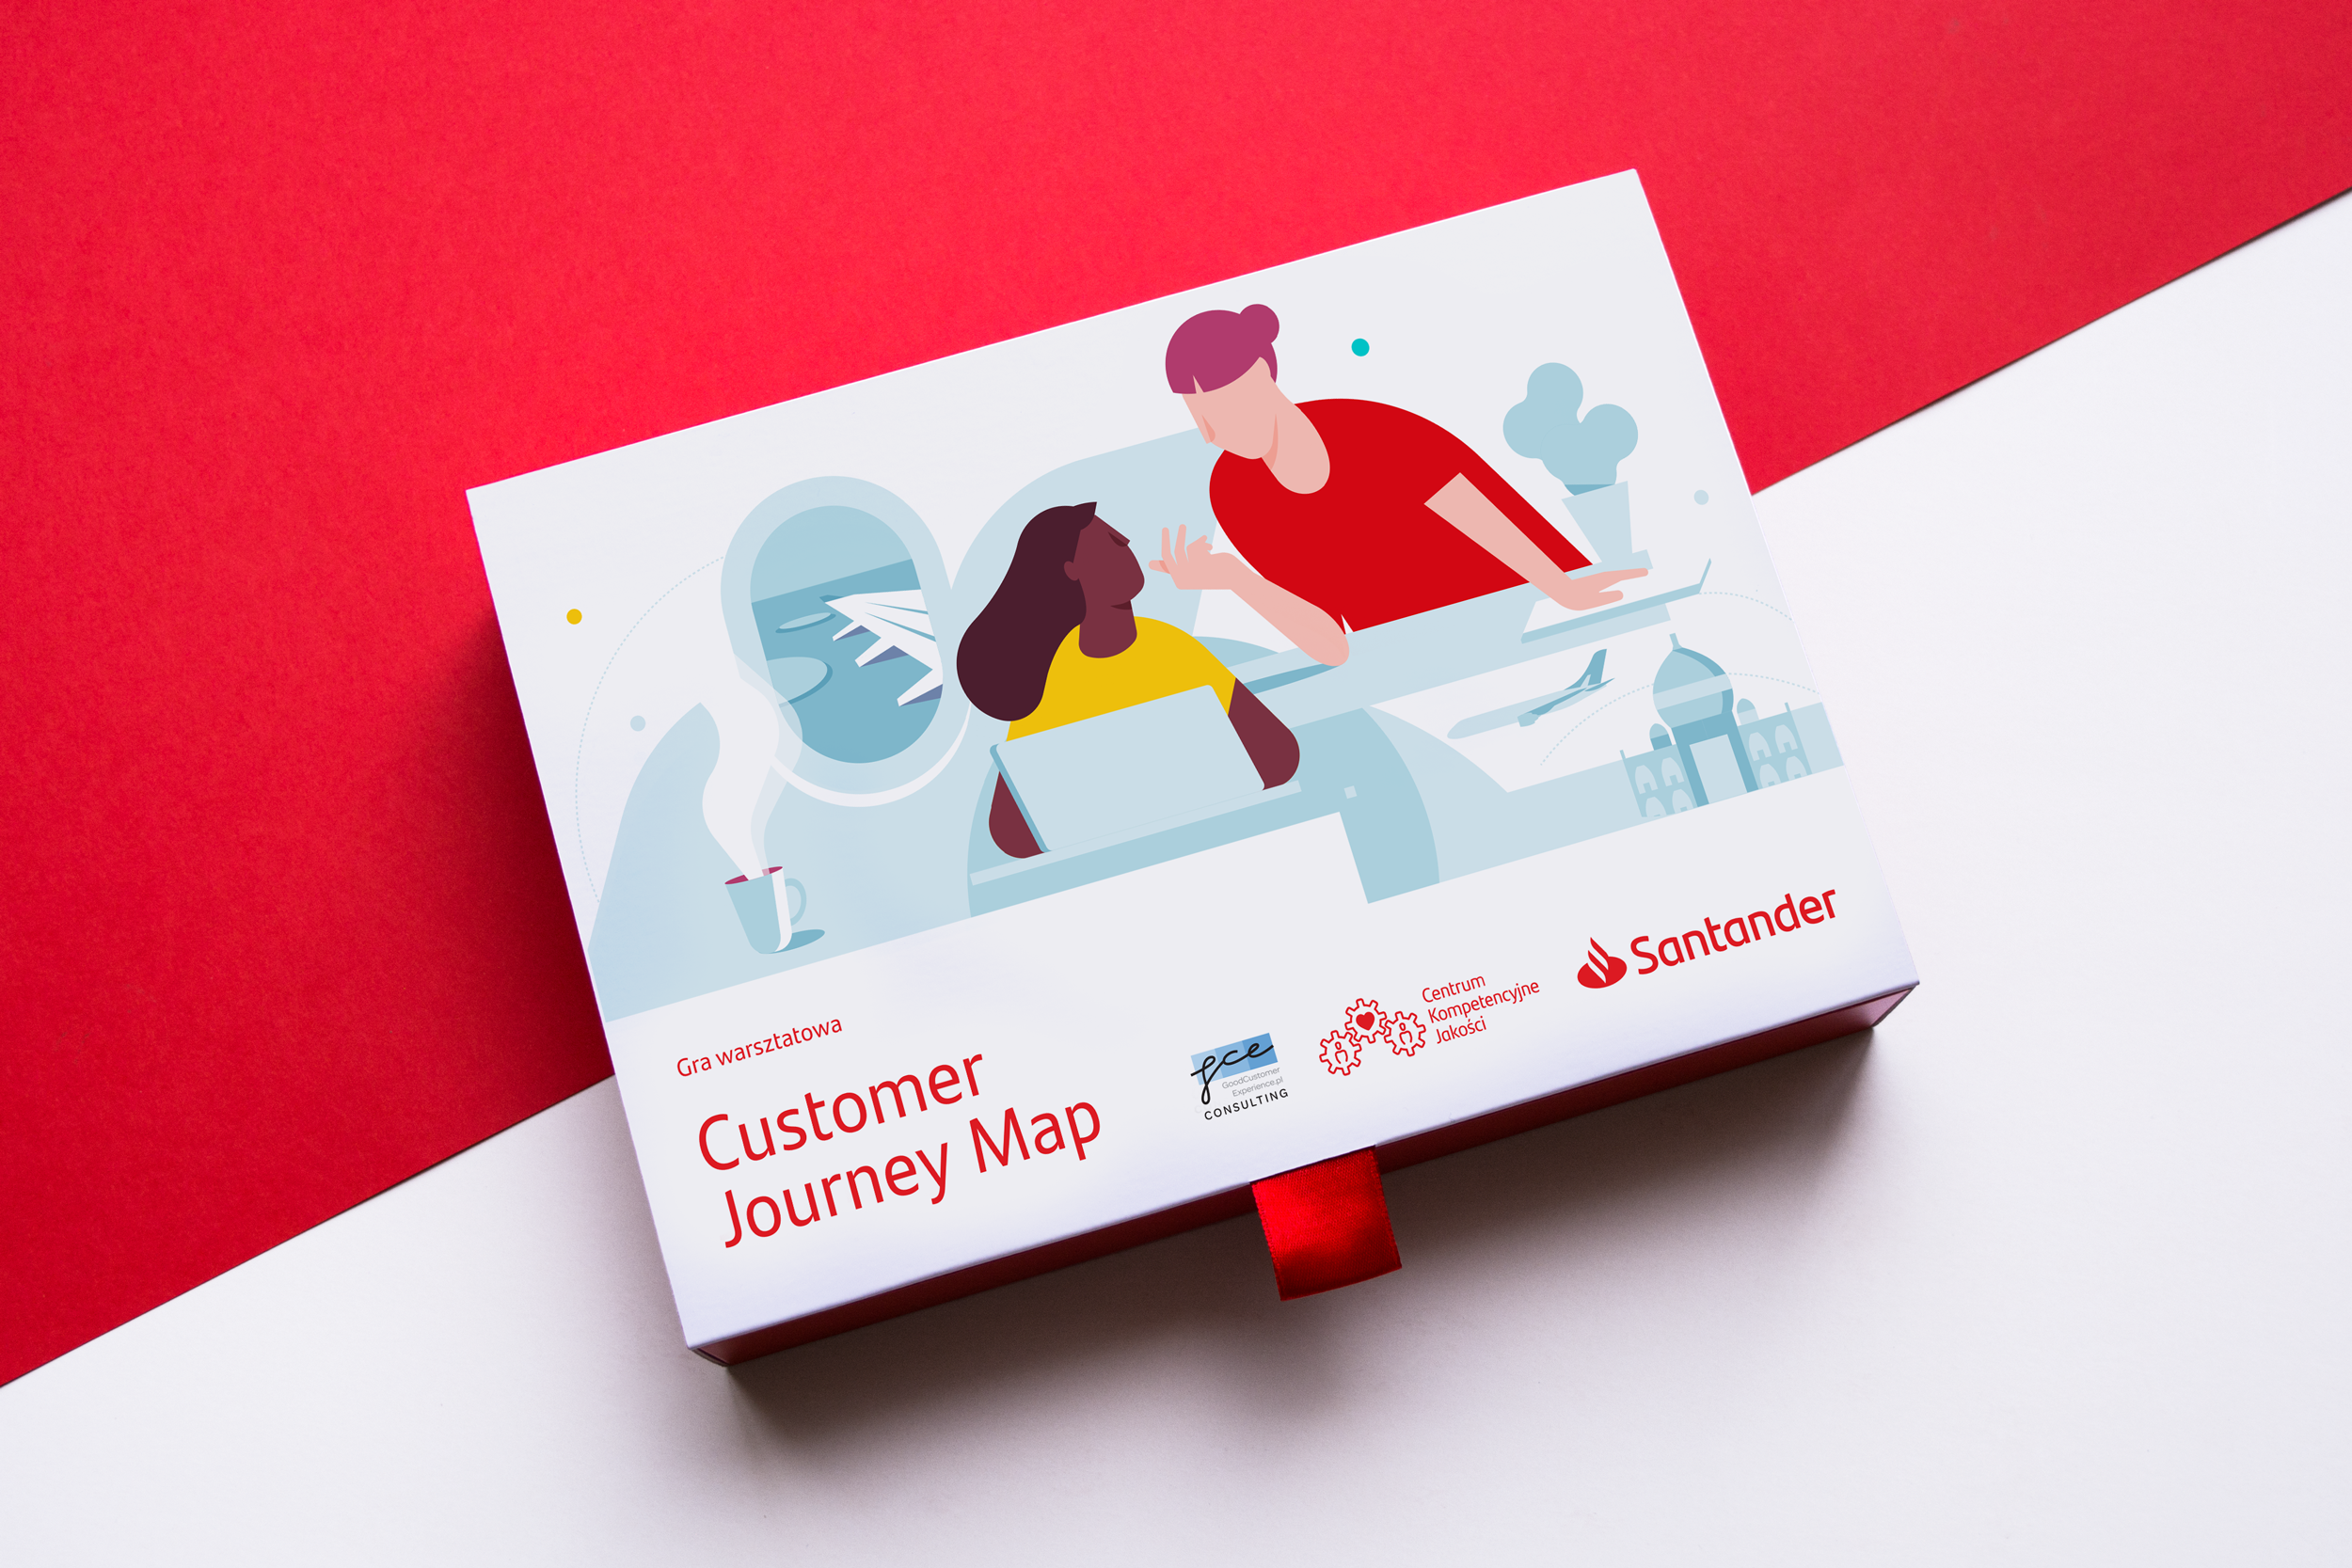 Santander Customer Journey